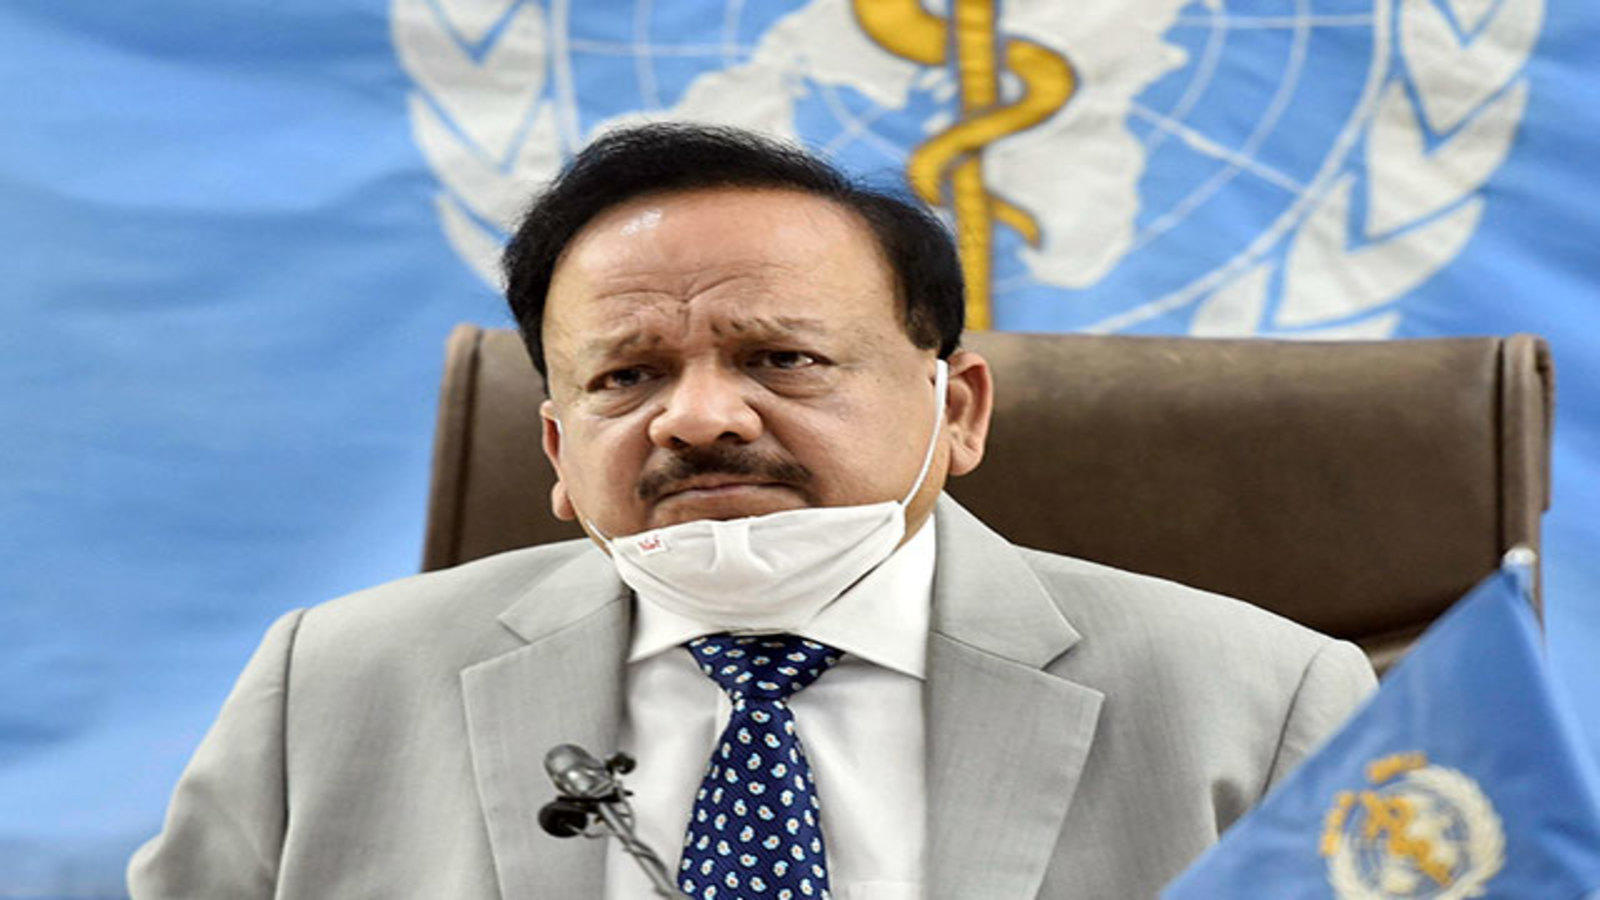 Dr. Harsh Vardhan takes charge of 34-member WHO Executive Board as Chairman  - The Economic Times Video   ET Now